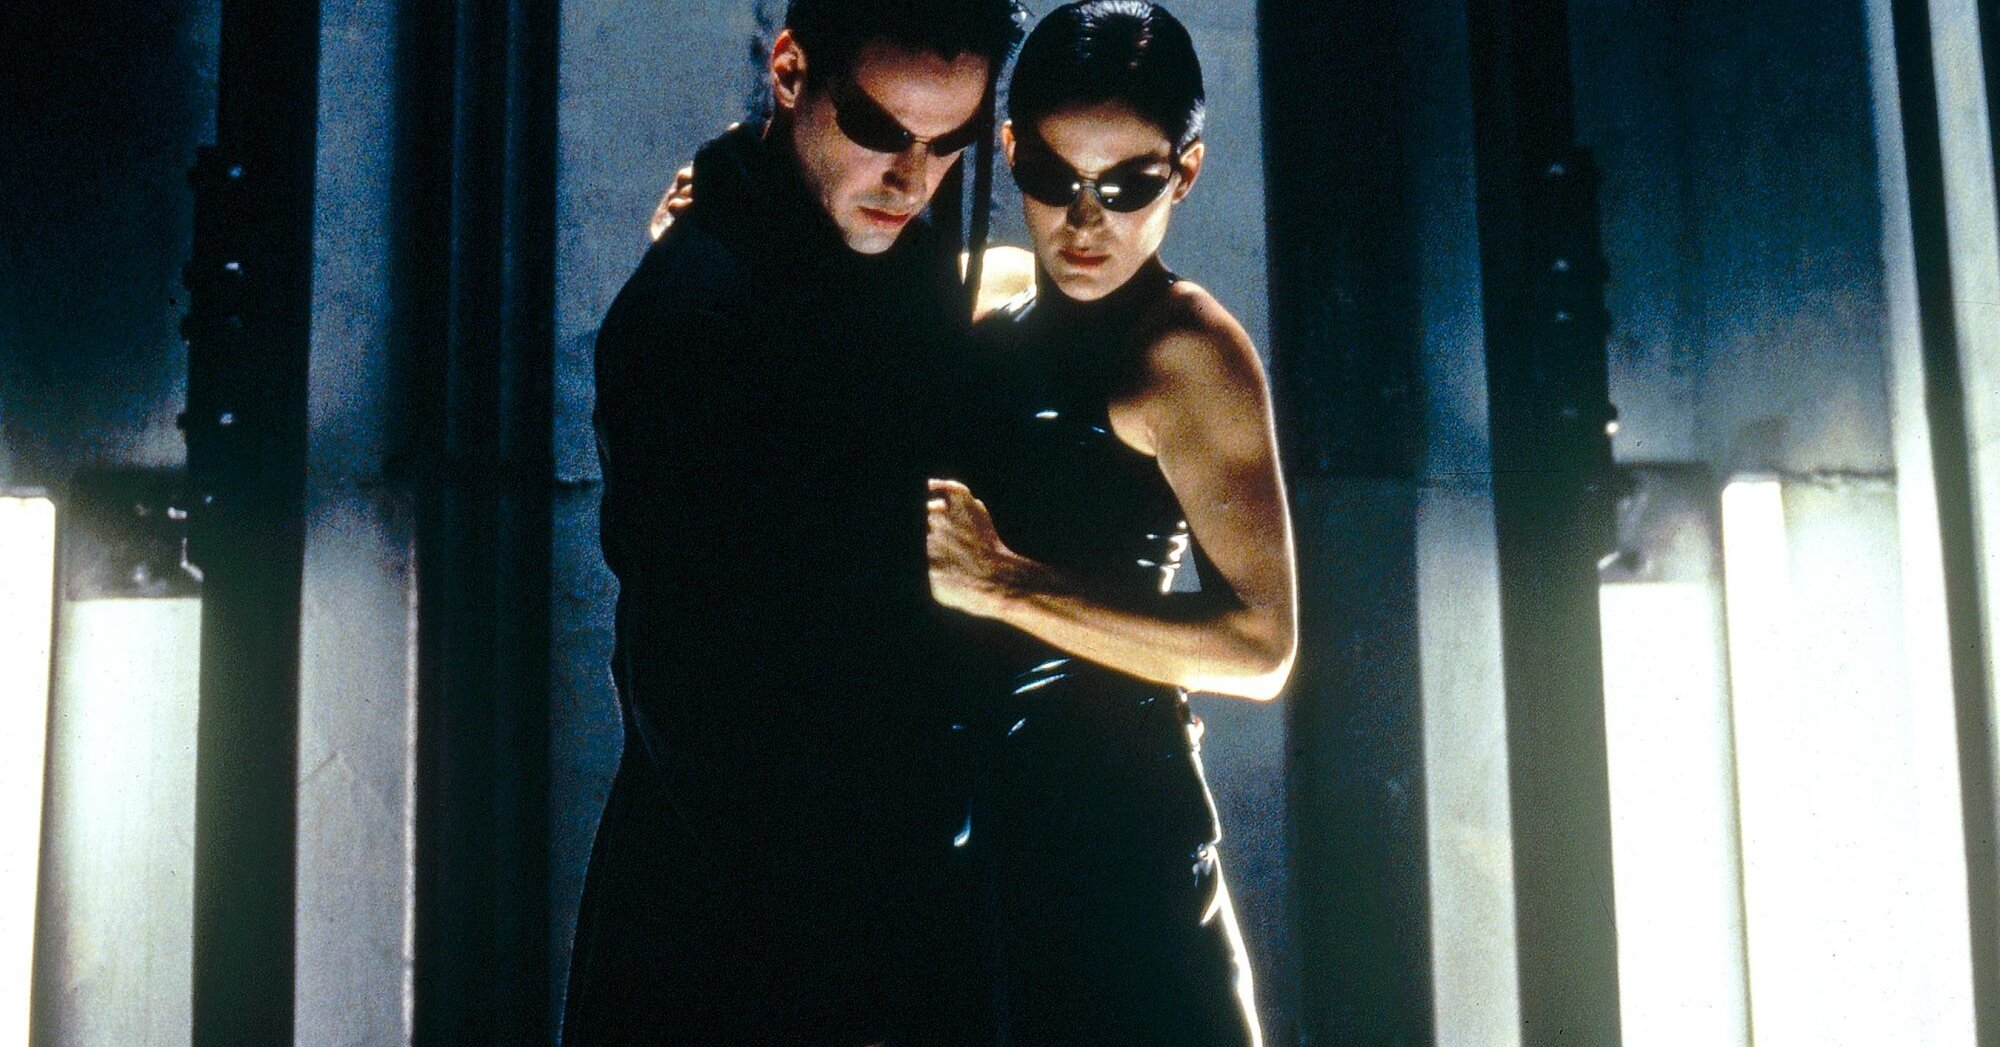 Lilly Wachowski says 'original intention' of 'The Matrix' was its trans allegory